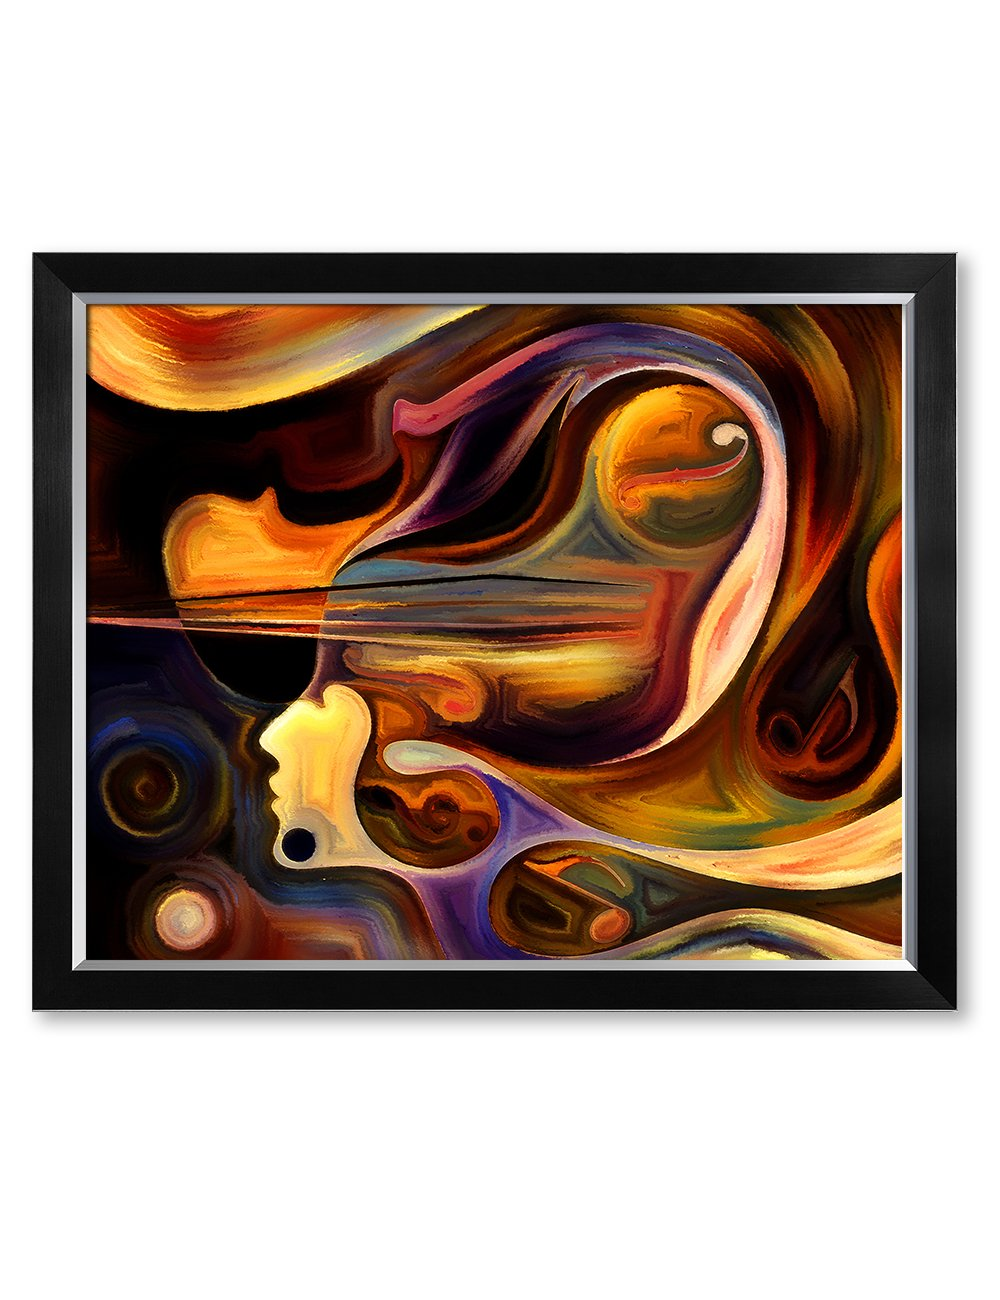 DecorArts - Abstract Art( Inner Melody series), Giclee Prints abstract modern canvas wall art for Wall Decor. 30x24'', Framed Size: 33x27''